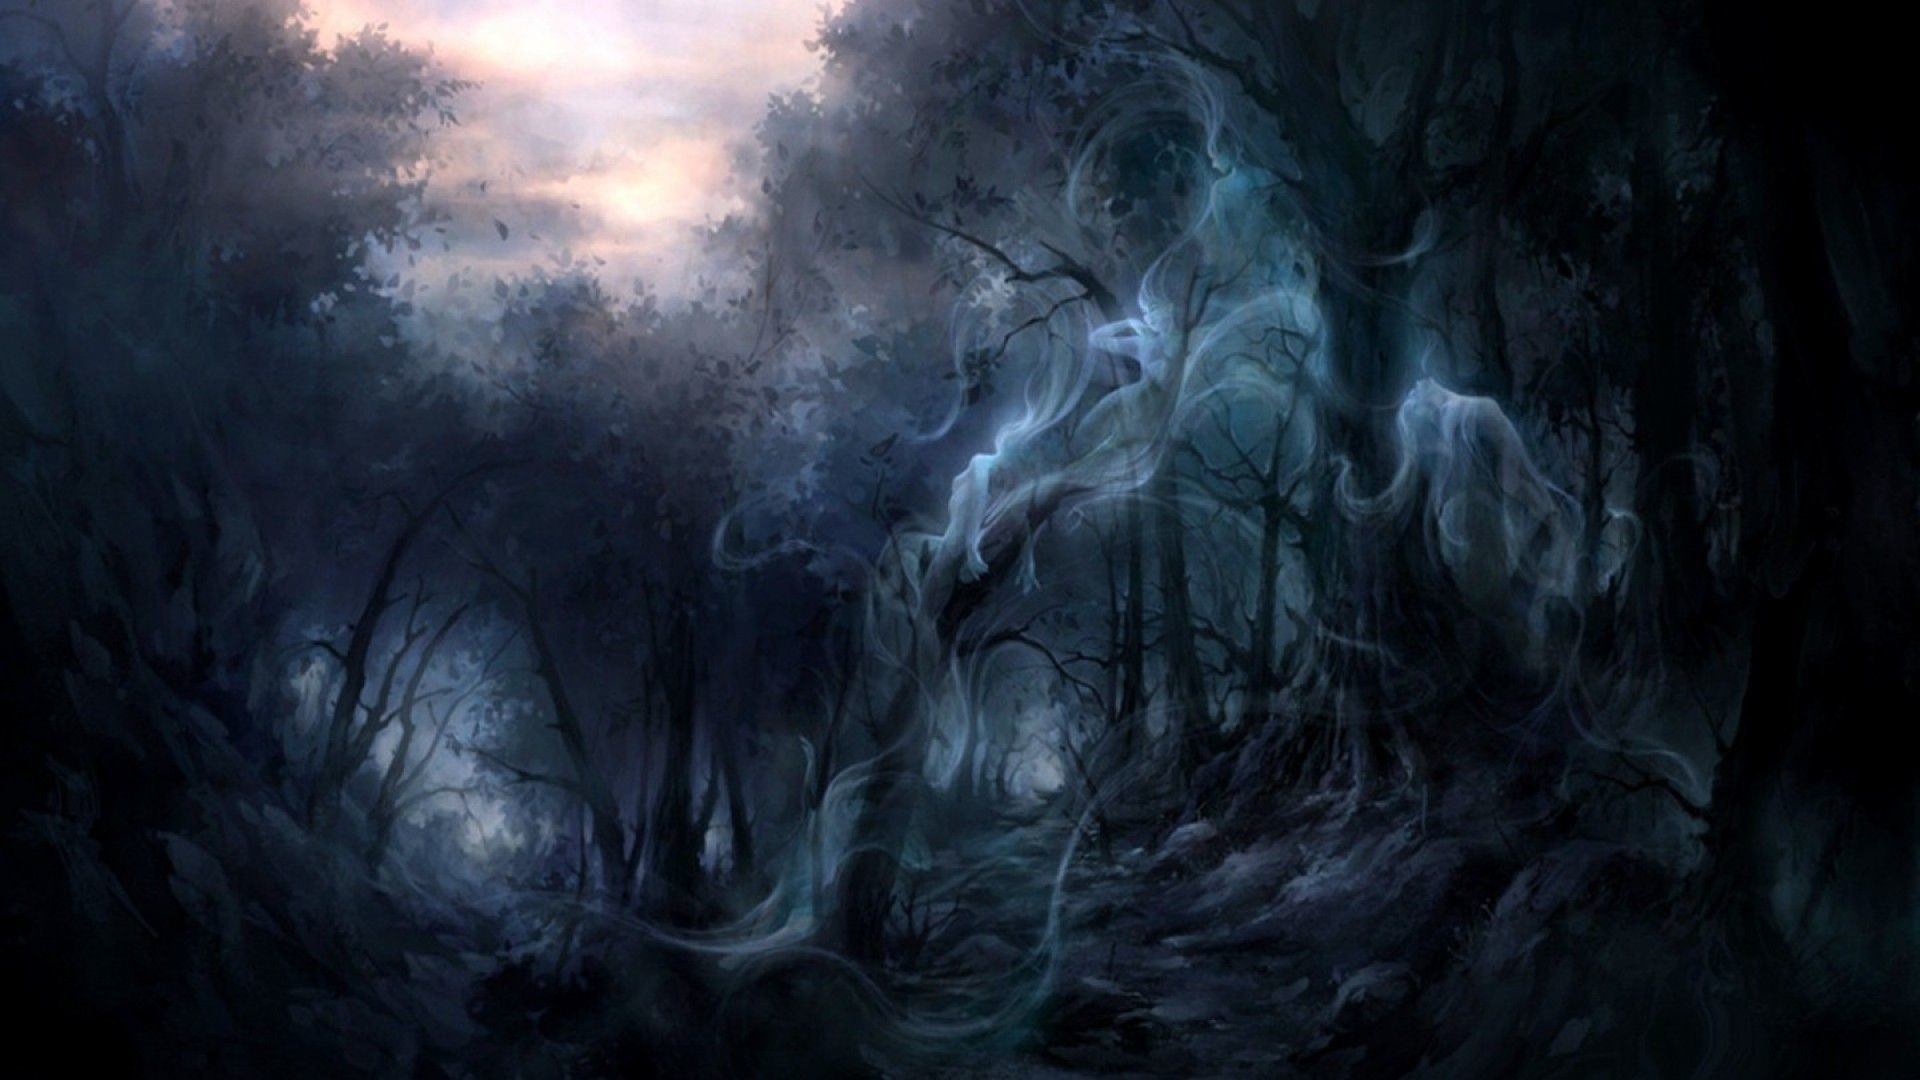 Scary Forest Wallpaper (57+ Images